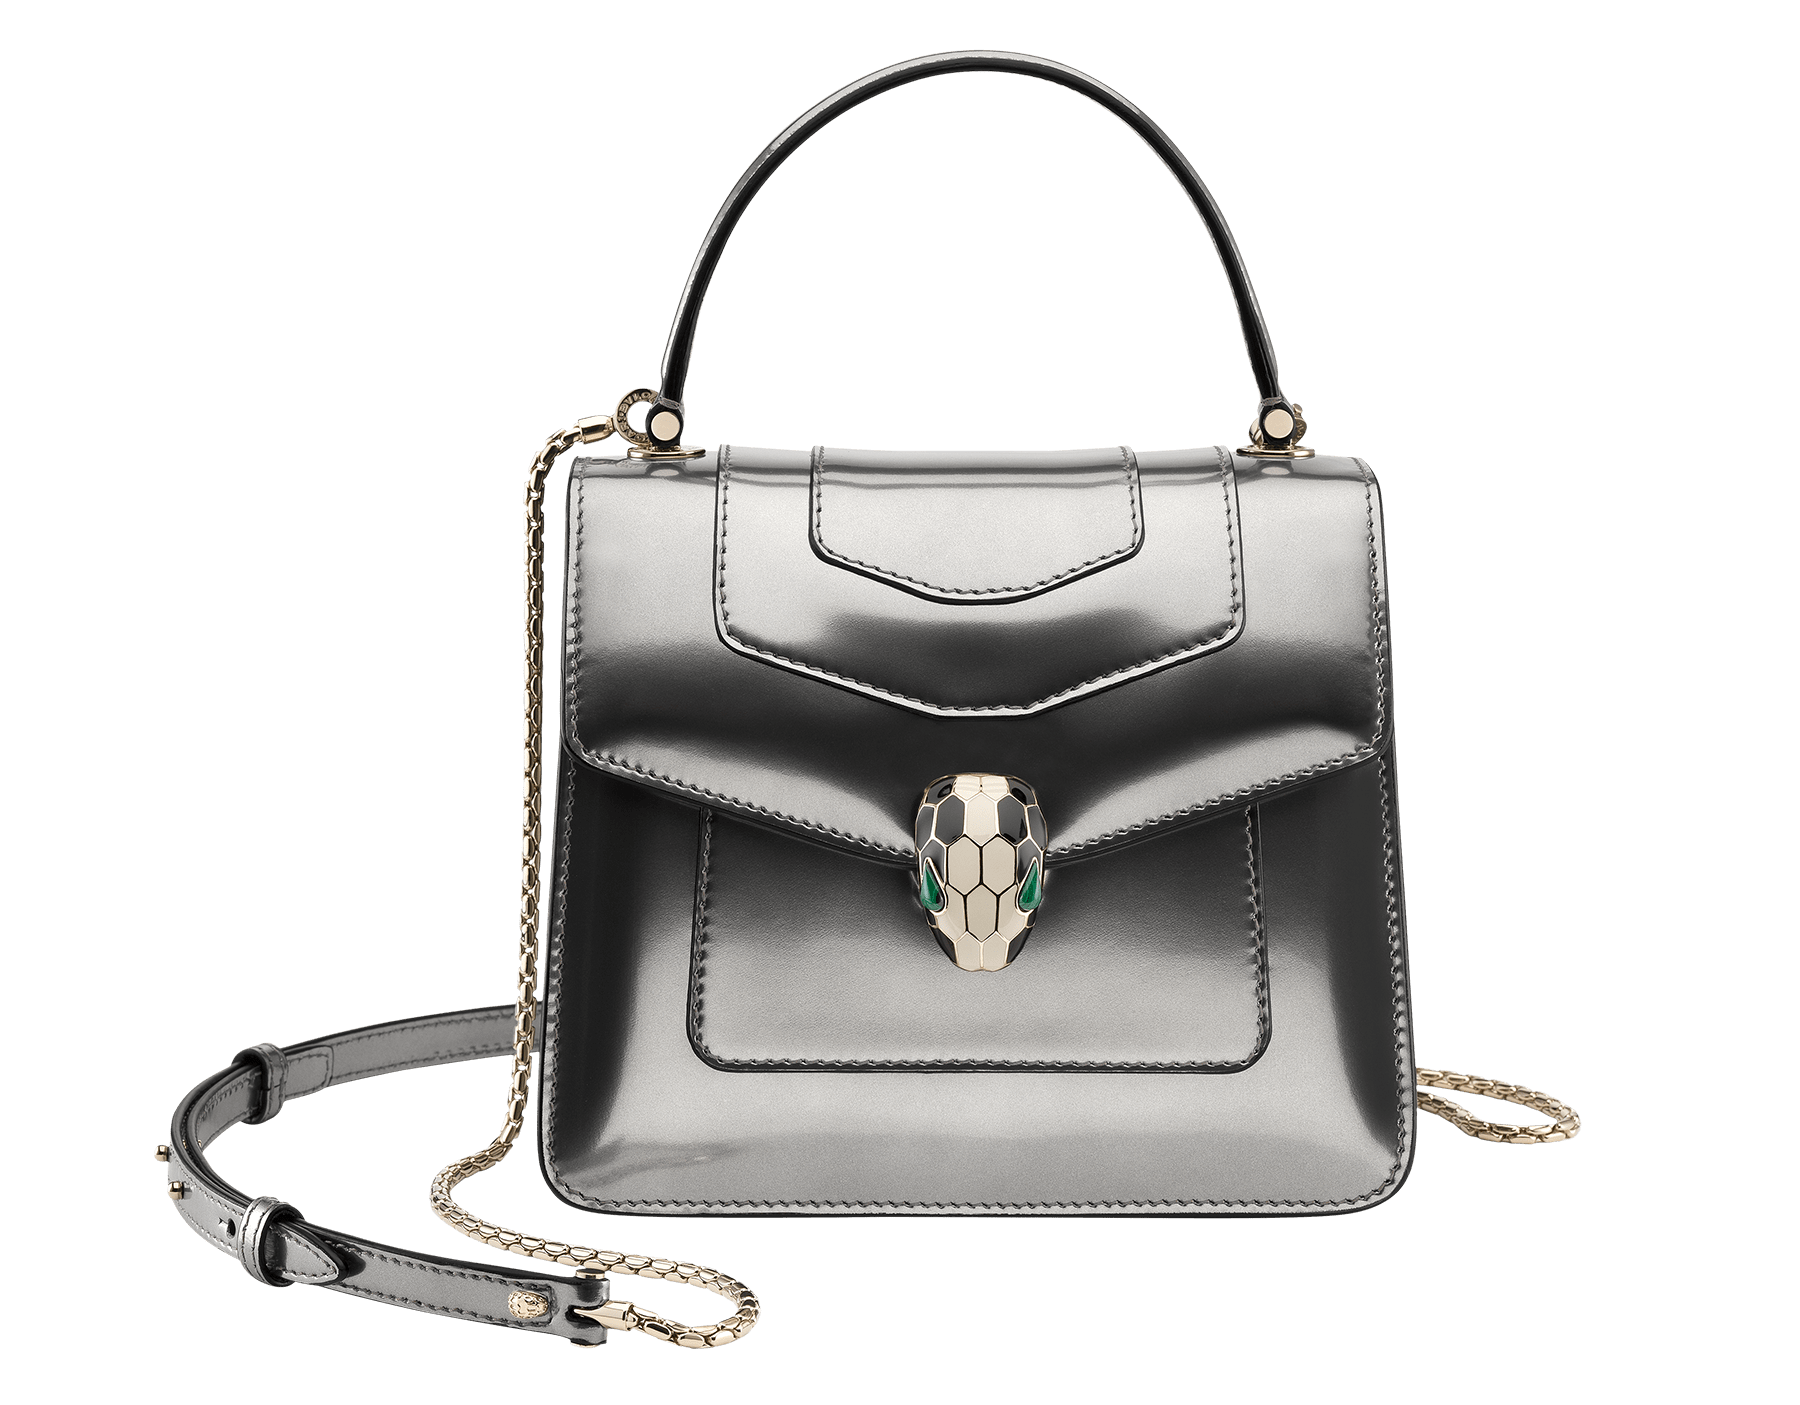 Flap cover bag Serpenti Forever in antique bronze brushed metallic calf leather. Brass light gold plated hardware and snake head closure in black and white enamel with eyes in green malachite. Test-Borse-Colore image 1